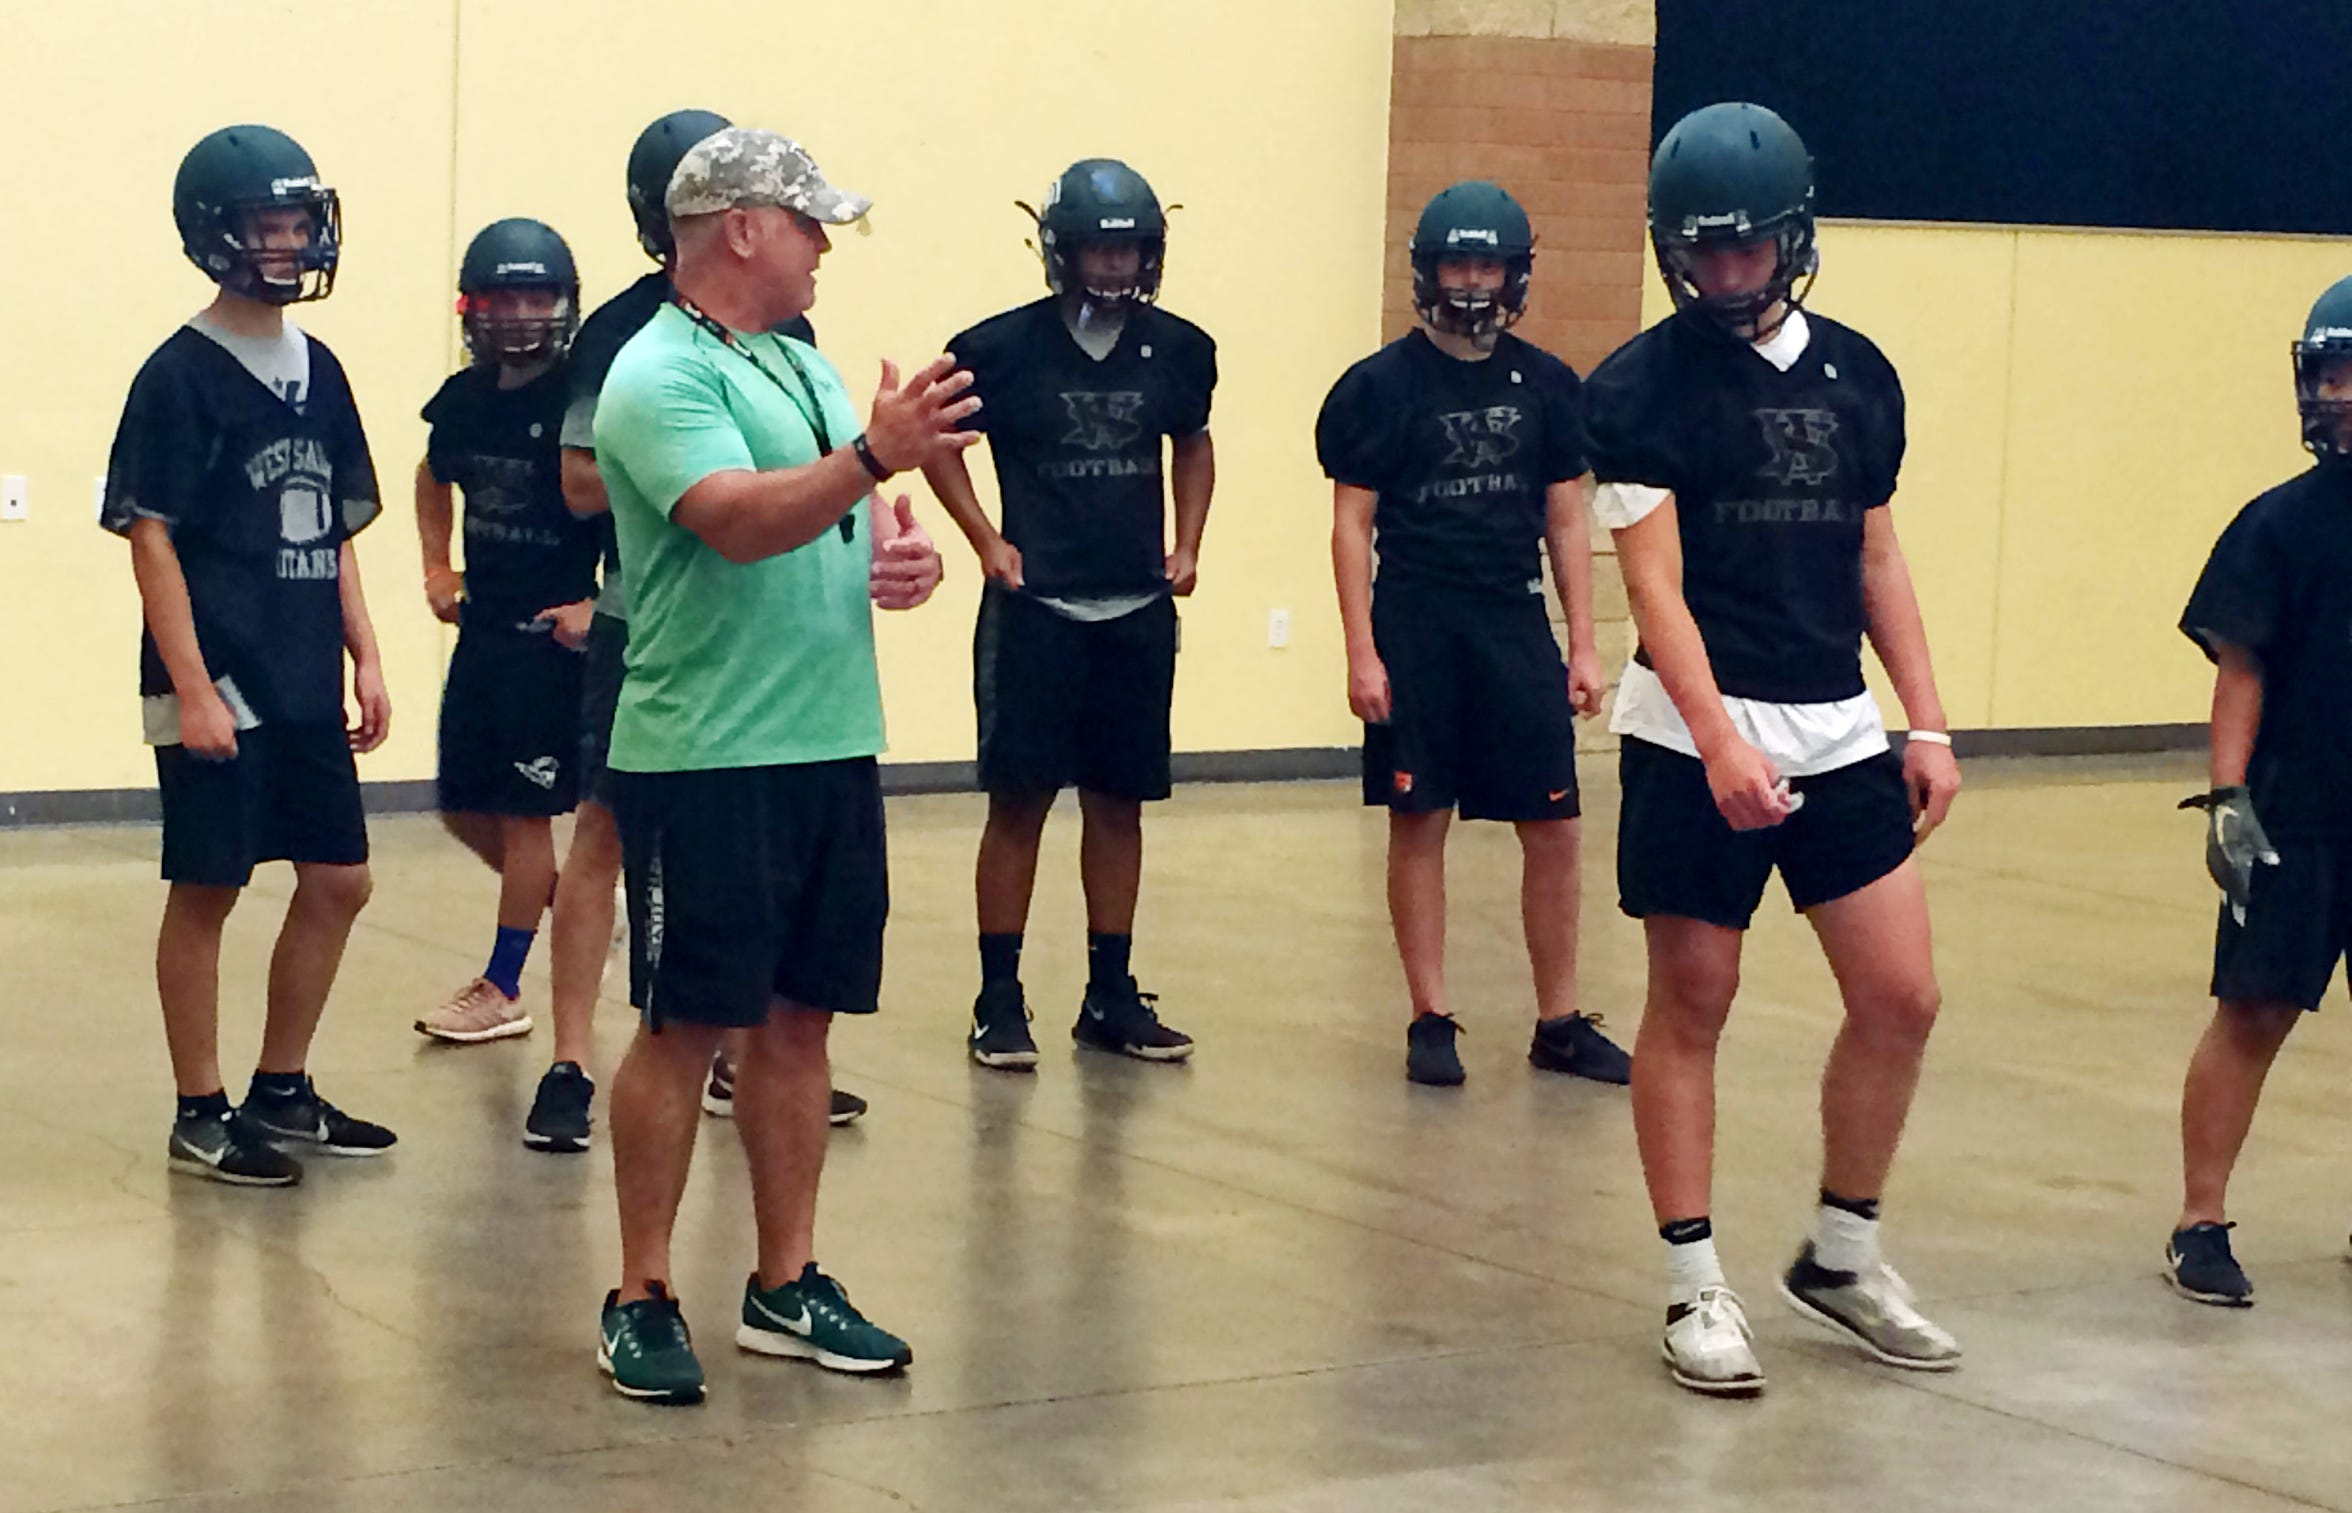 West Salem football coach Shawn Stanley works with players during an indoor drill Tuesday, Aug. 14, 2018. The team practiced indoors because of concerns over the air quality.